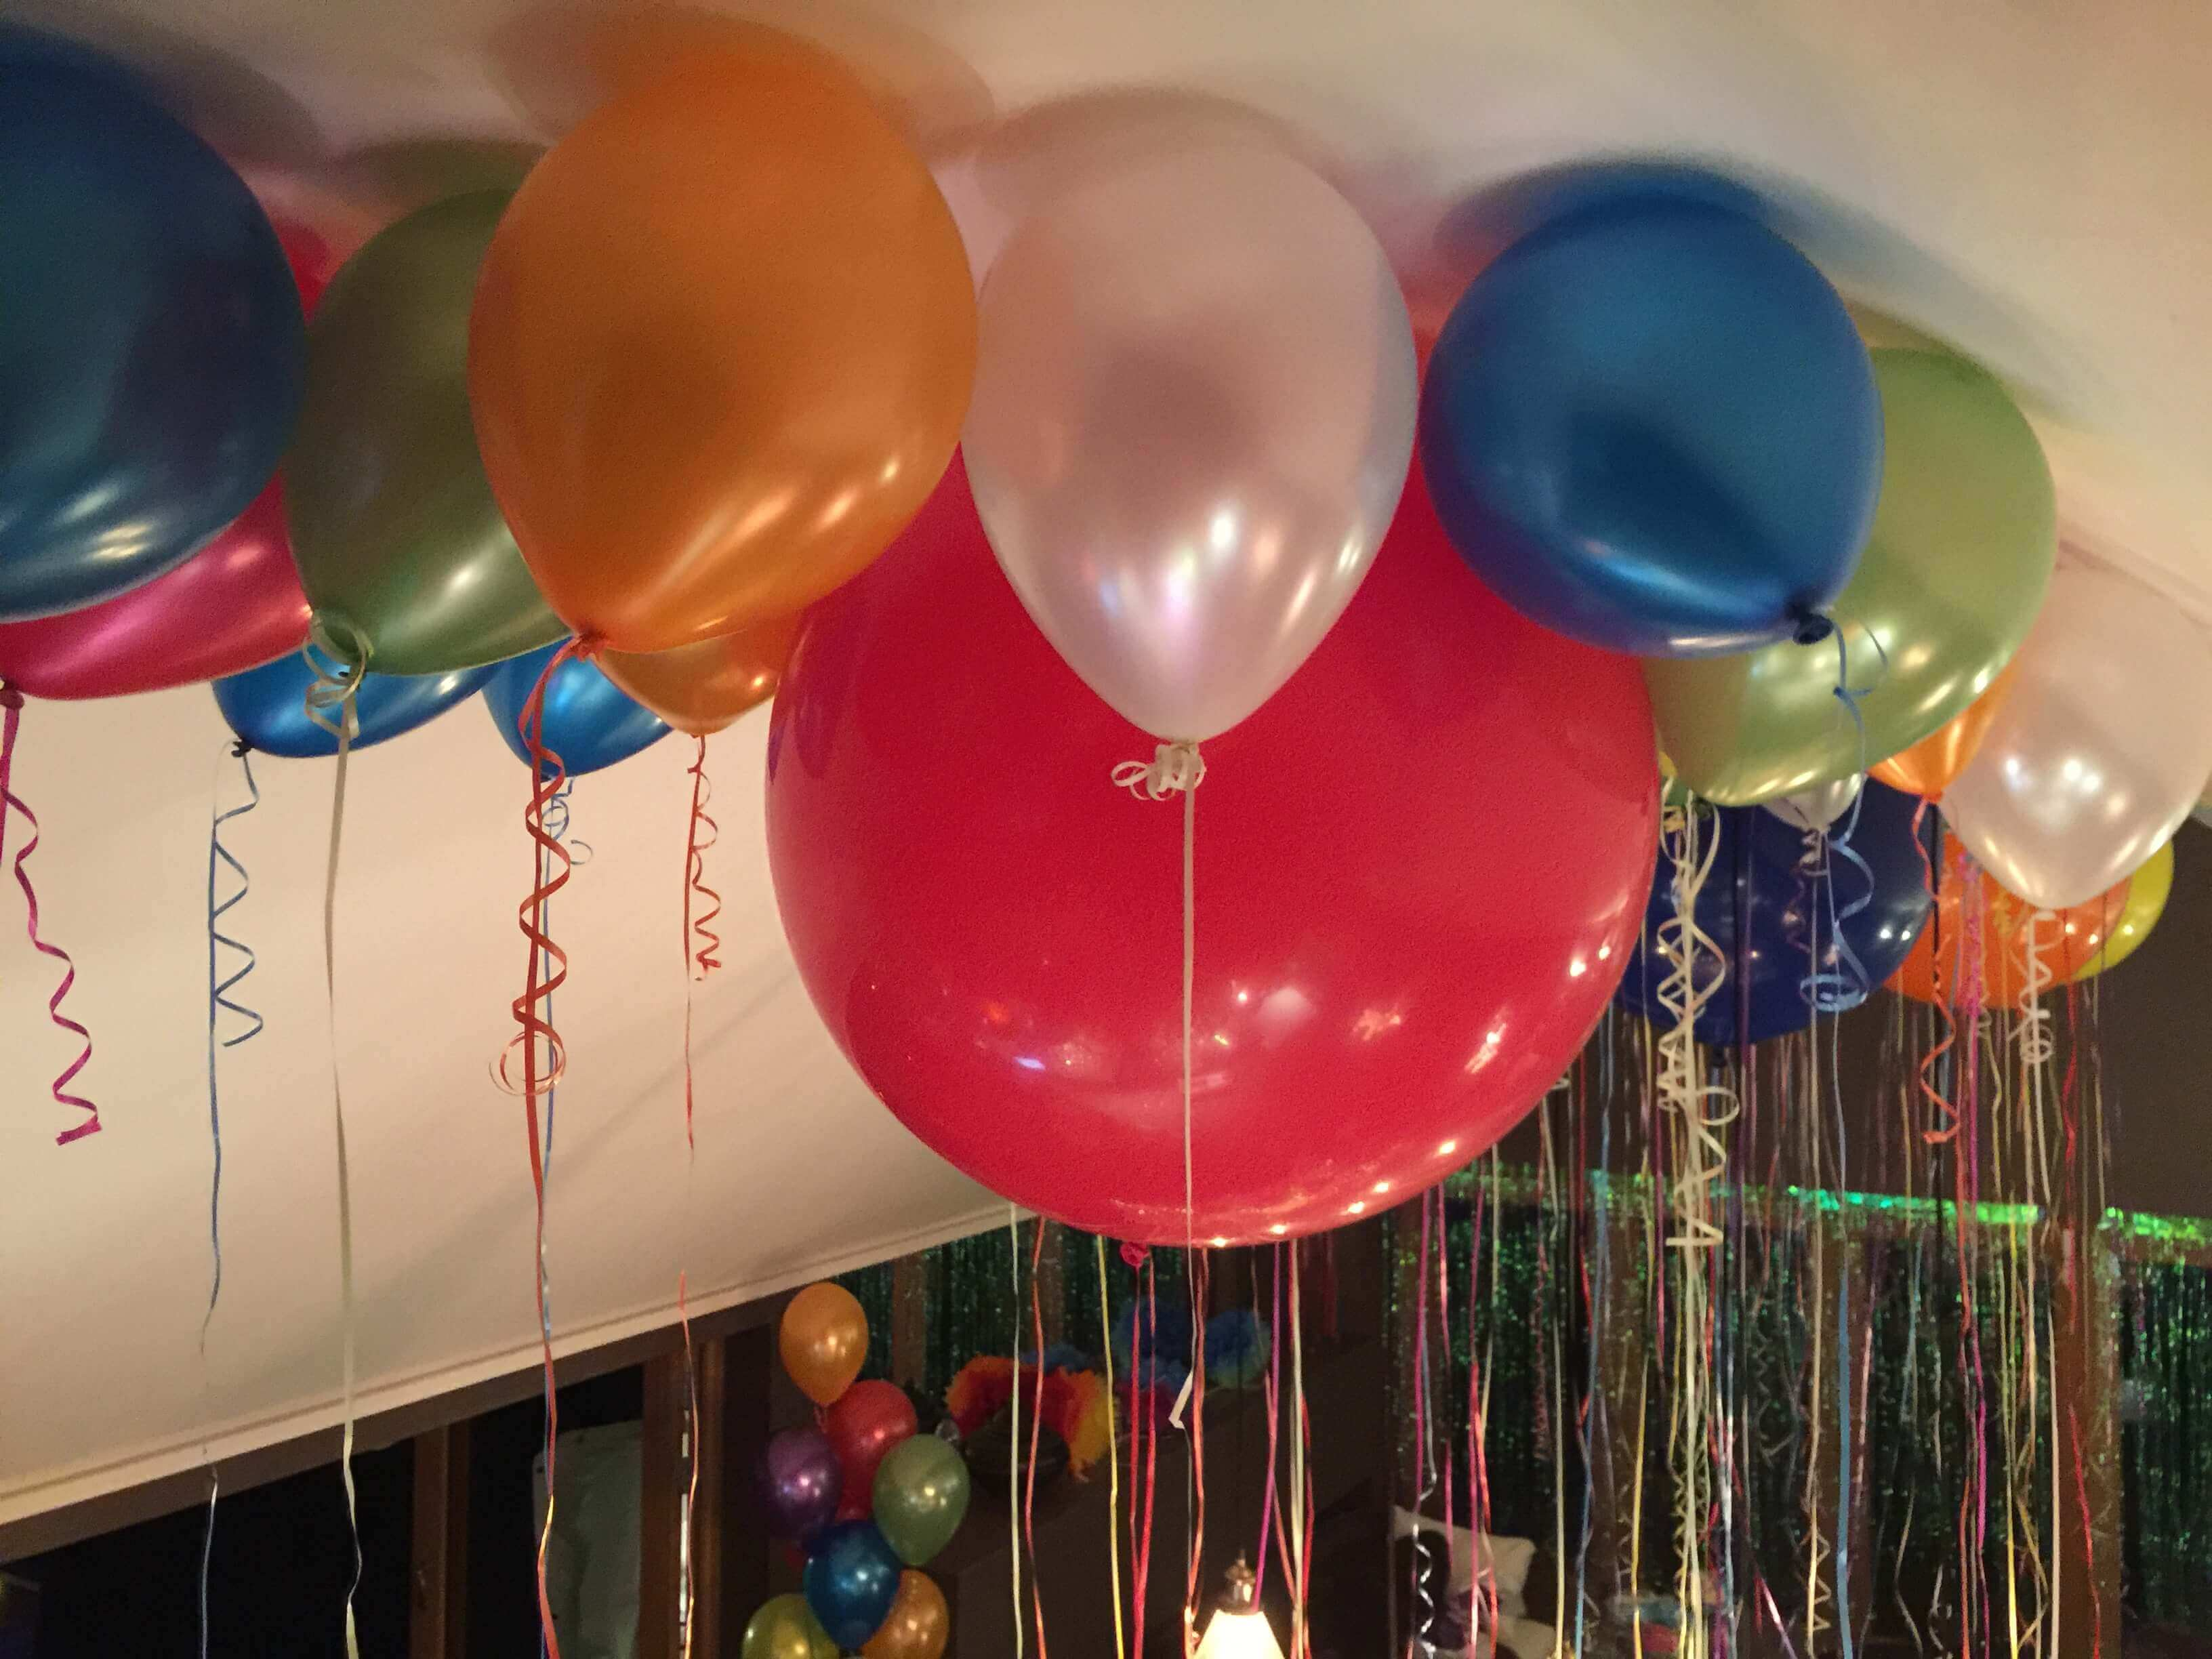 Hassle Free Balloon Ordering Delivery